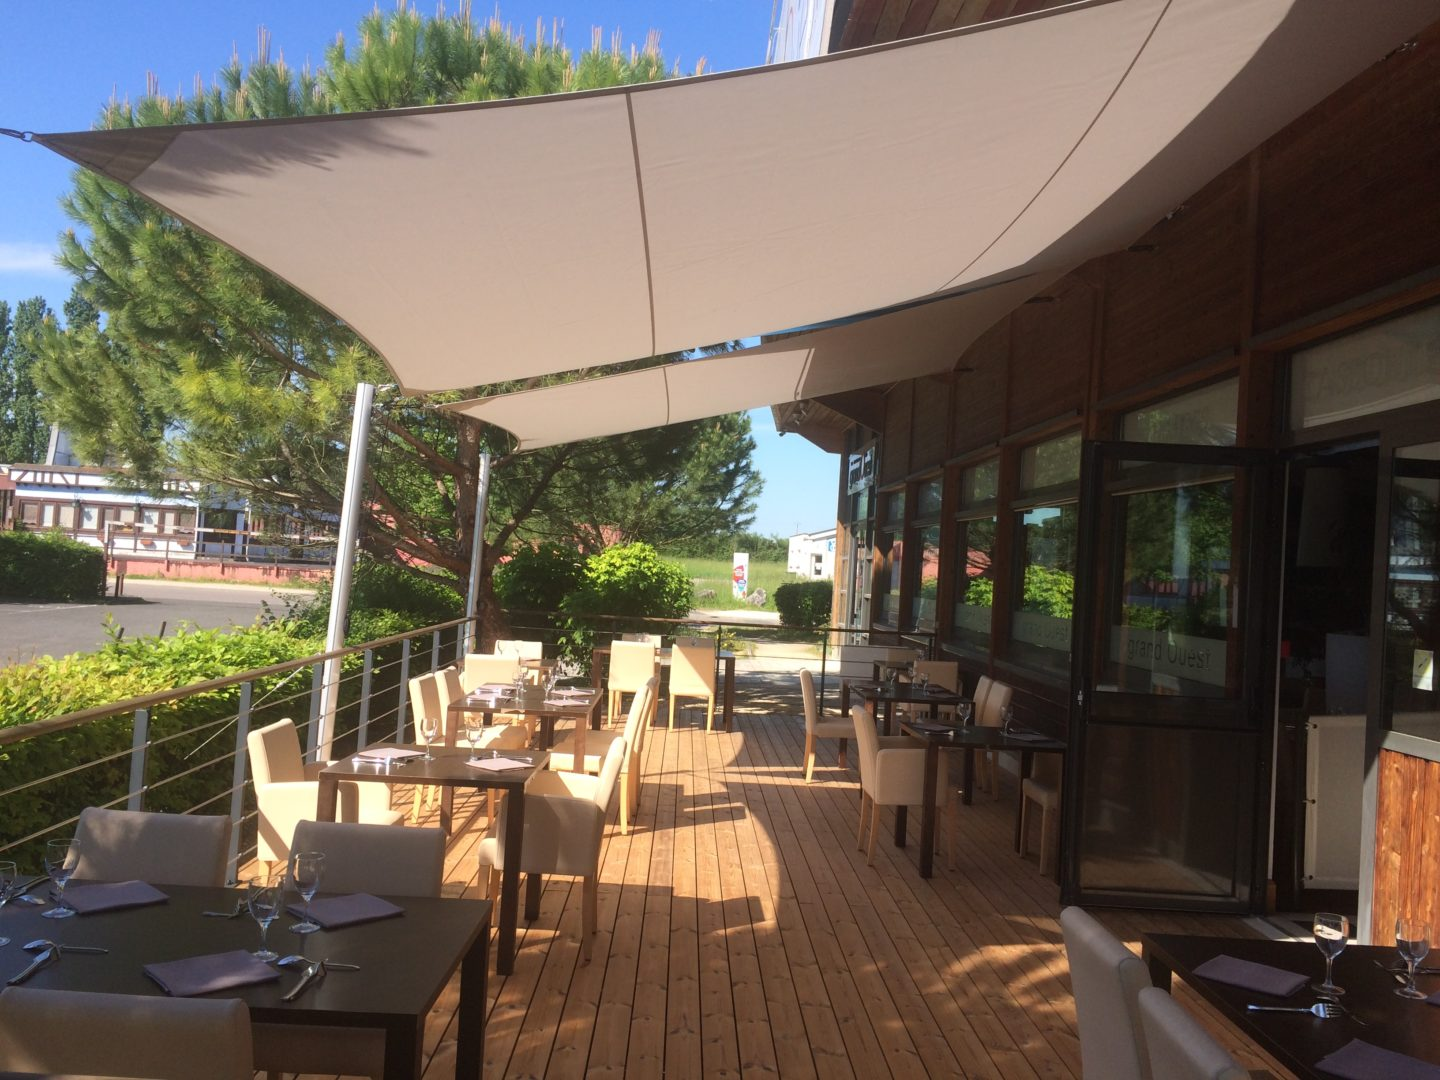 Terrasse mobilier GO - 2 - Le Grand Ouest